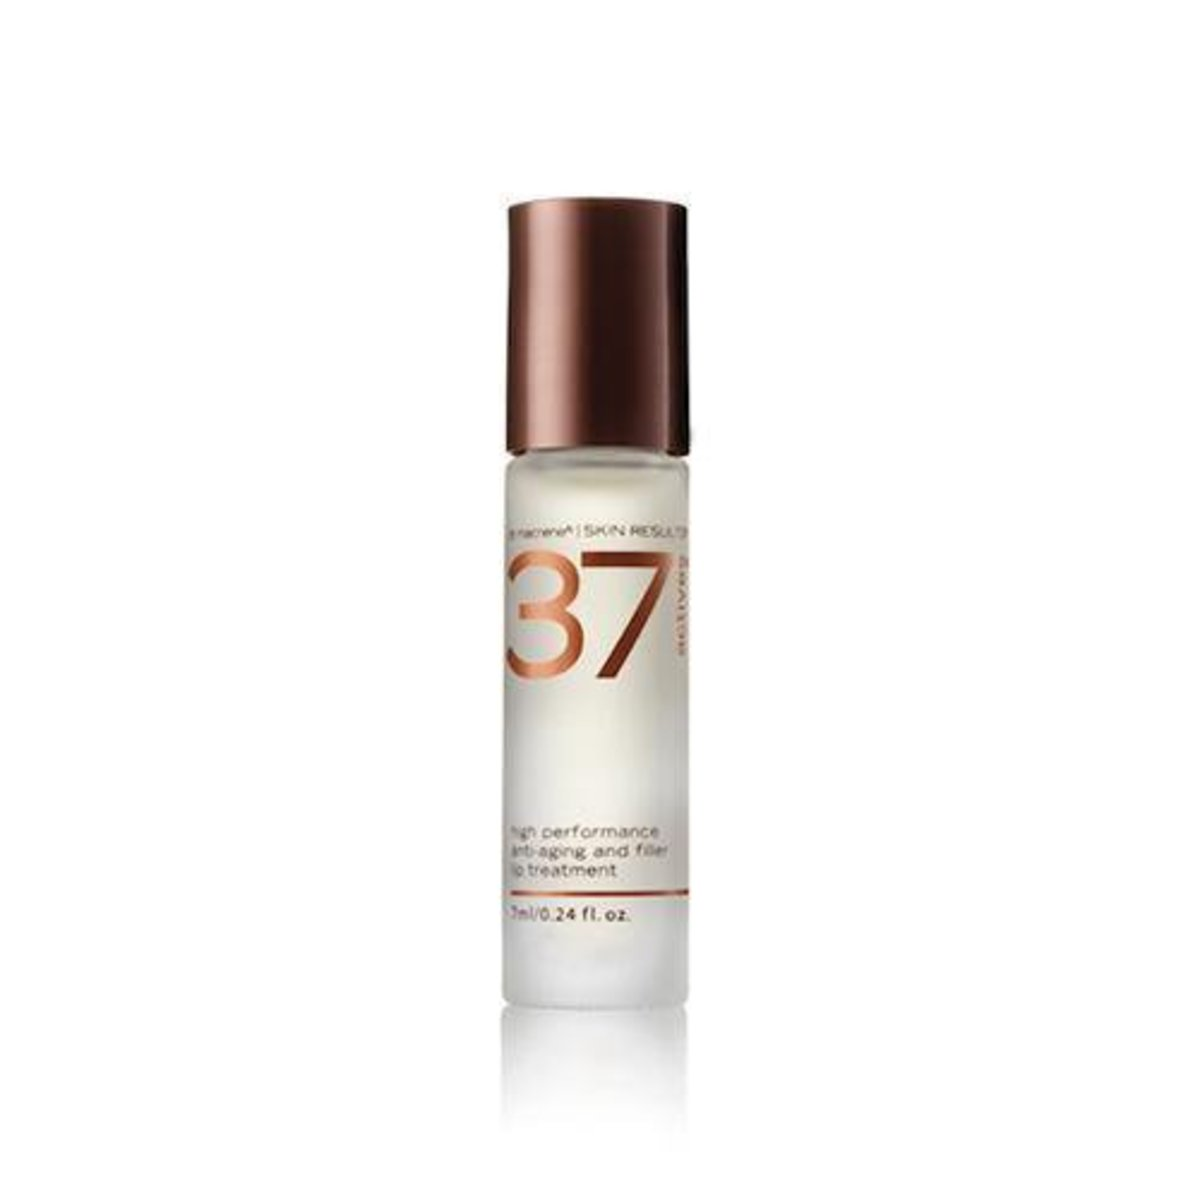 37_Actives_High_Performance_Anti-Aging_and_Filler_Lip_Treatment_1024x1024